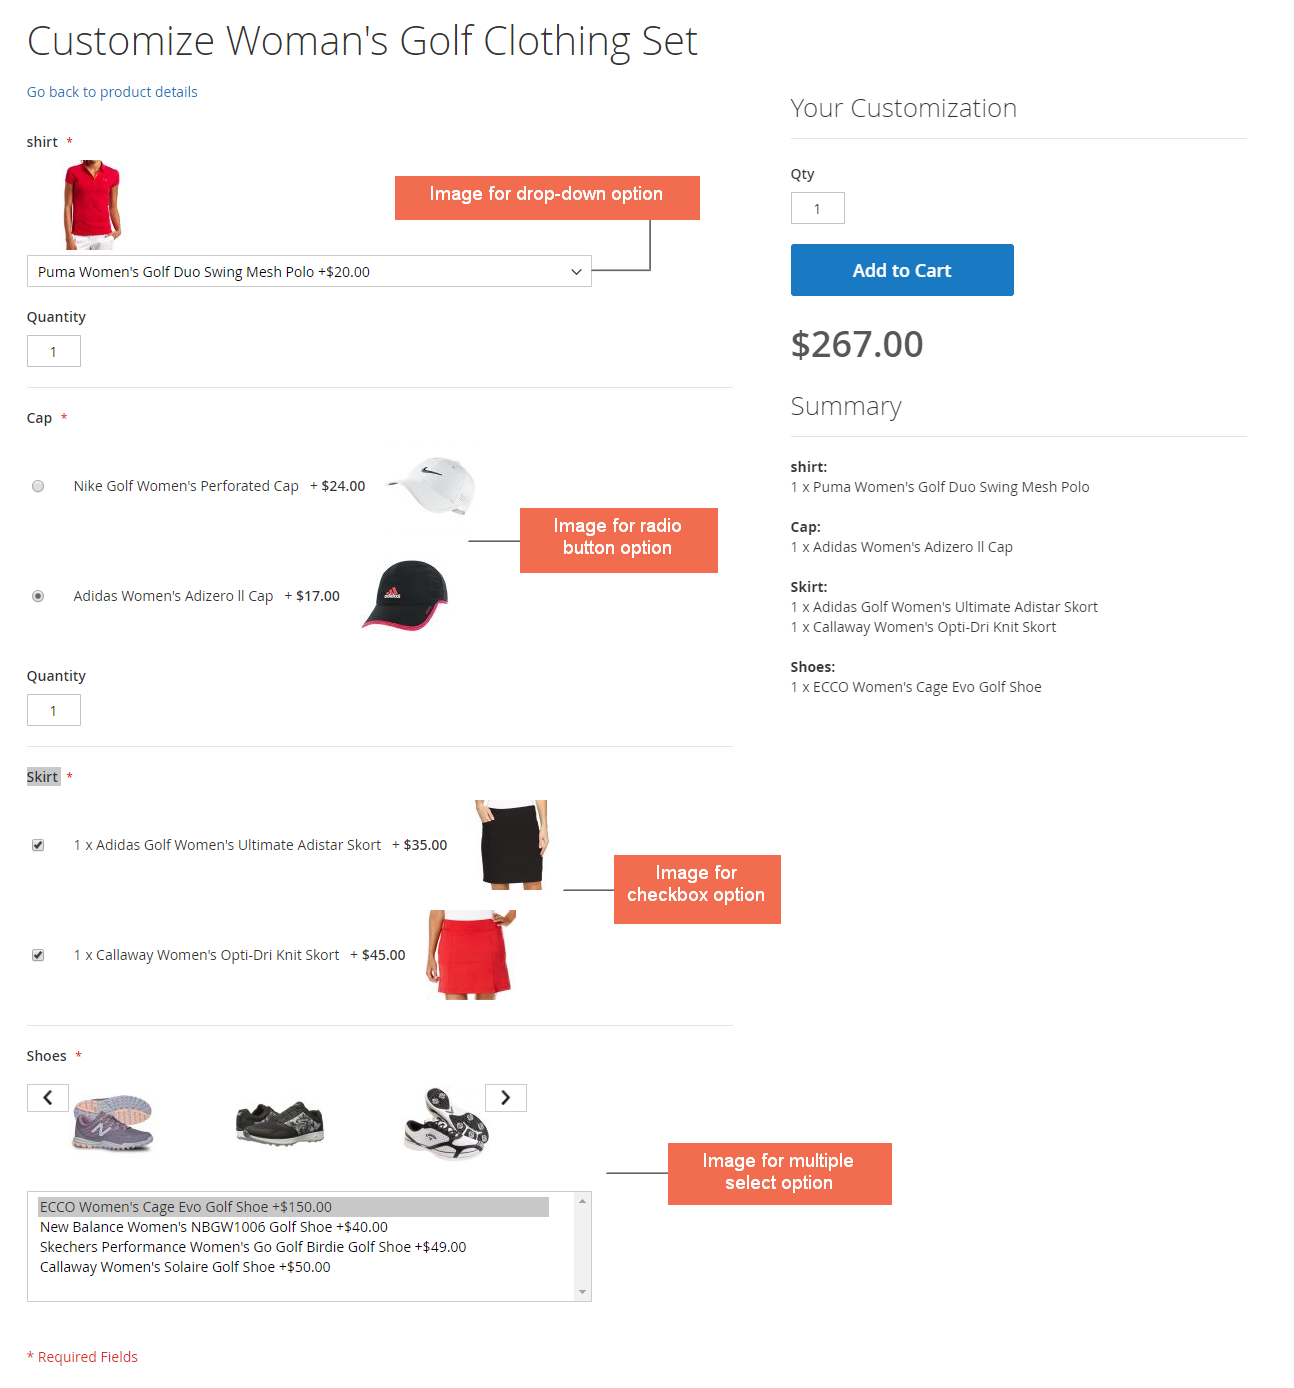 show children product images in options - magento 2 bundle option image